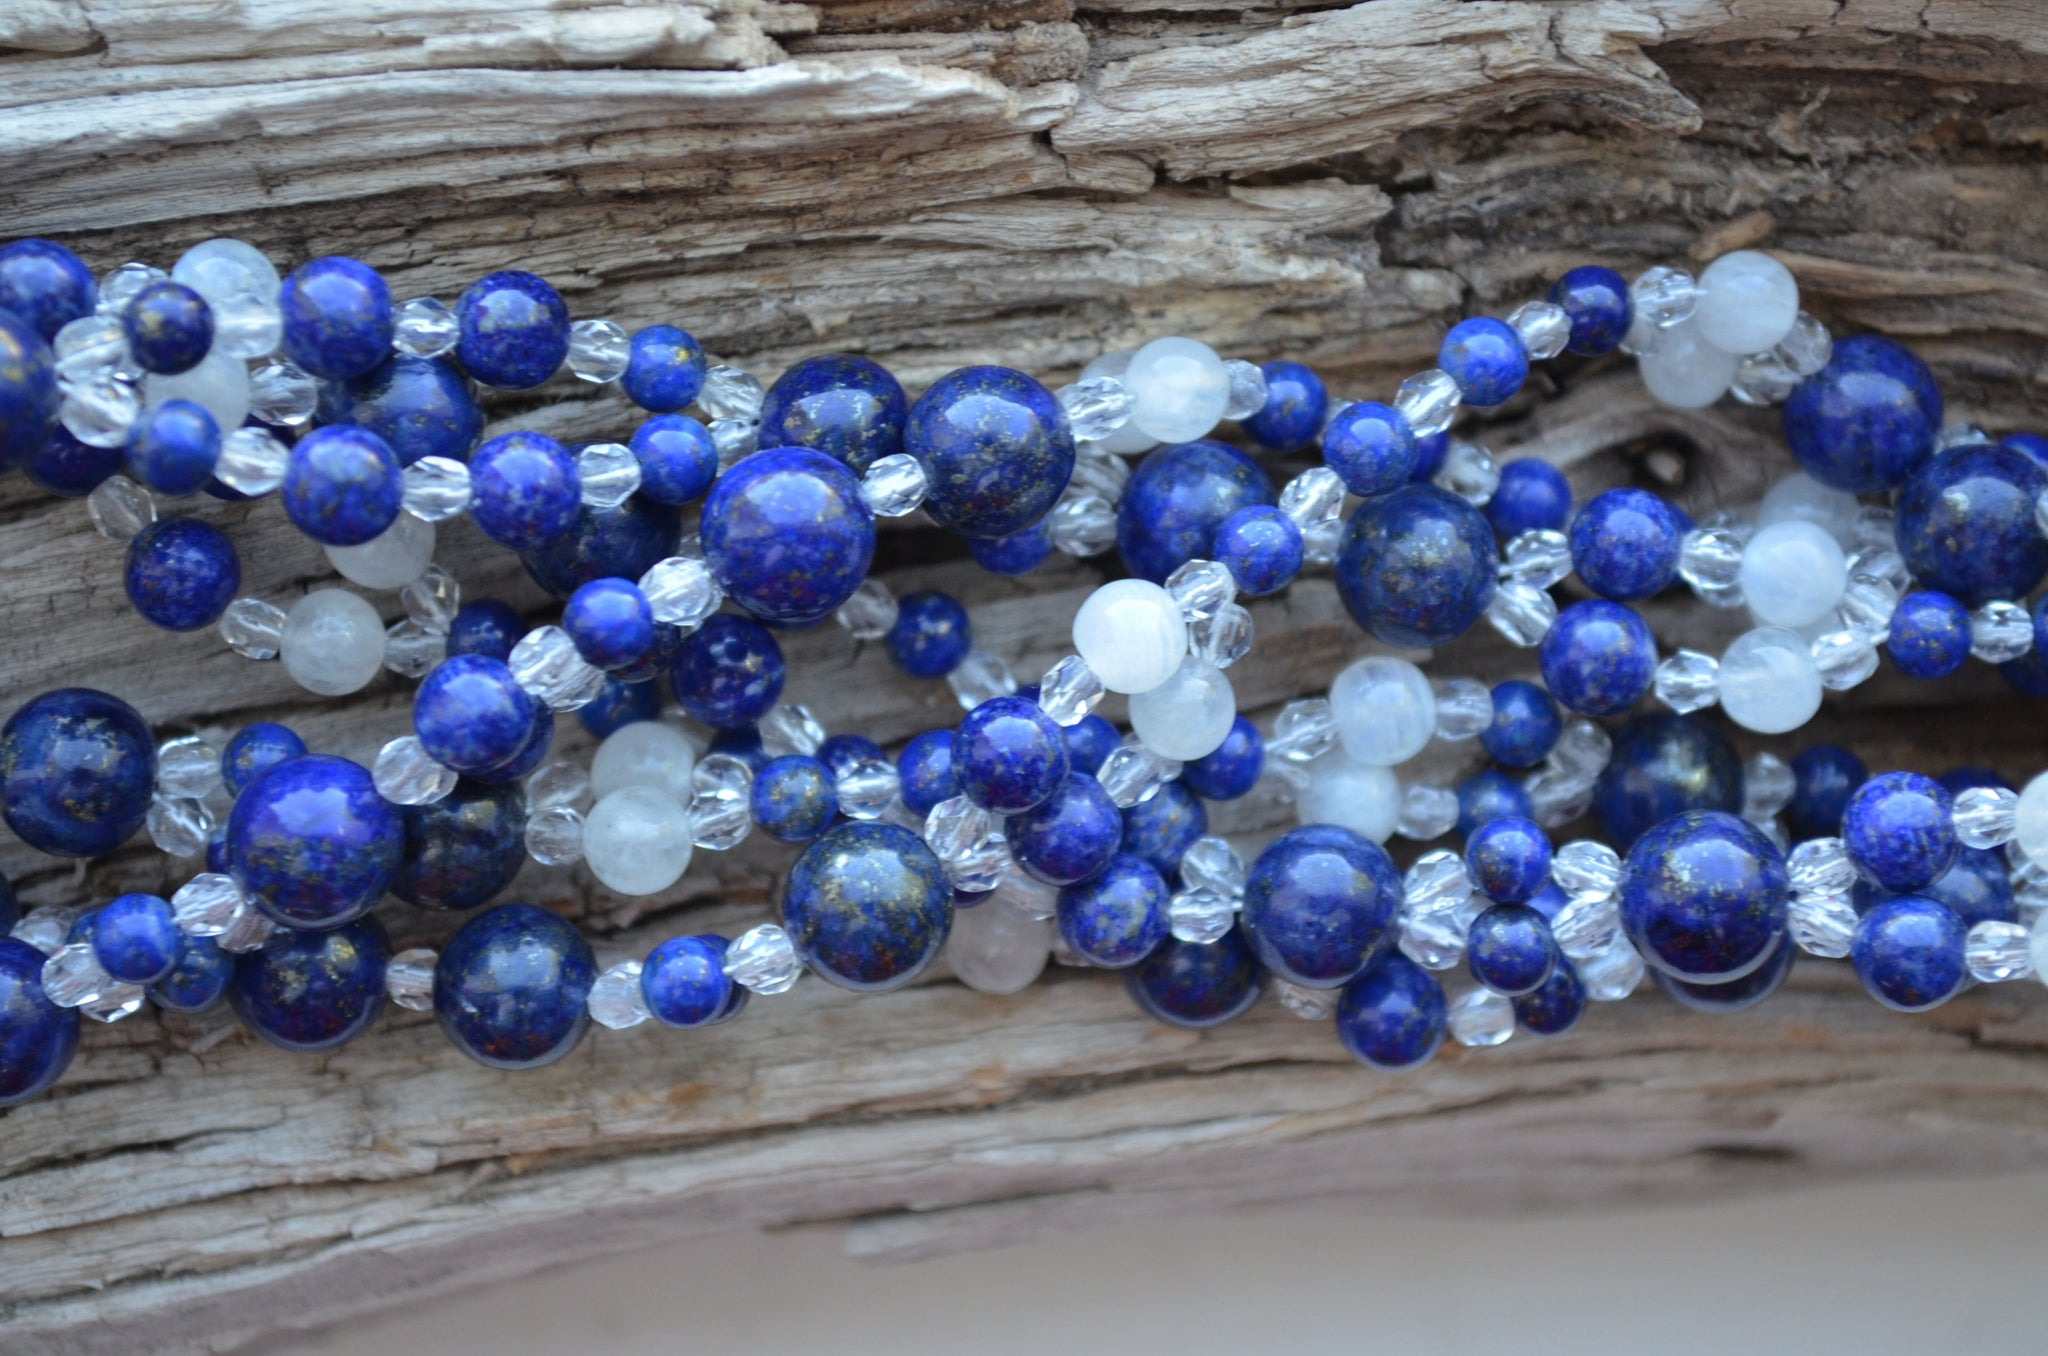 6mm, 4mm & 8mm Lapis, 5mm Moonstone and Fire Polished Crystal